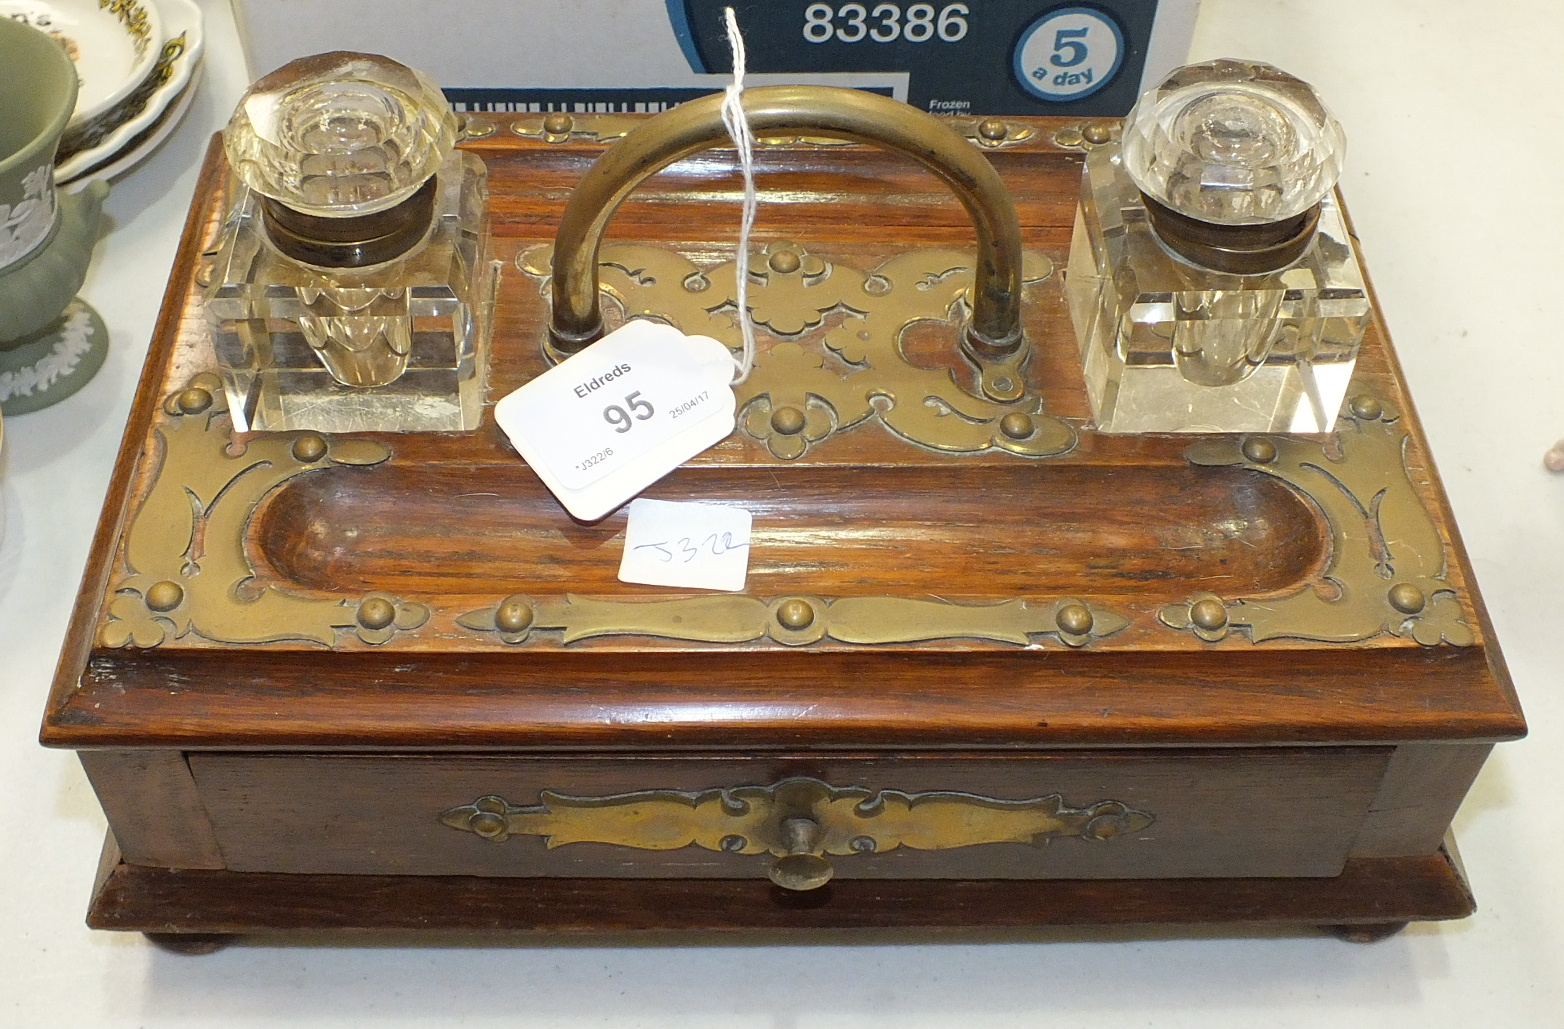 Lot 95 - An oak pen and ink stand with brass mounts and handle, fitted with a single drawer, 27.5 x 18cm,